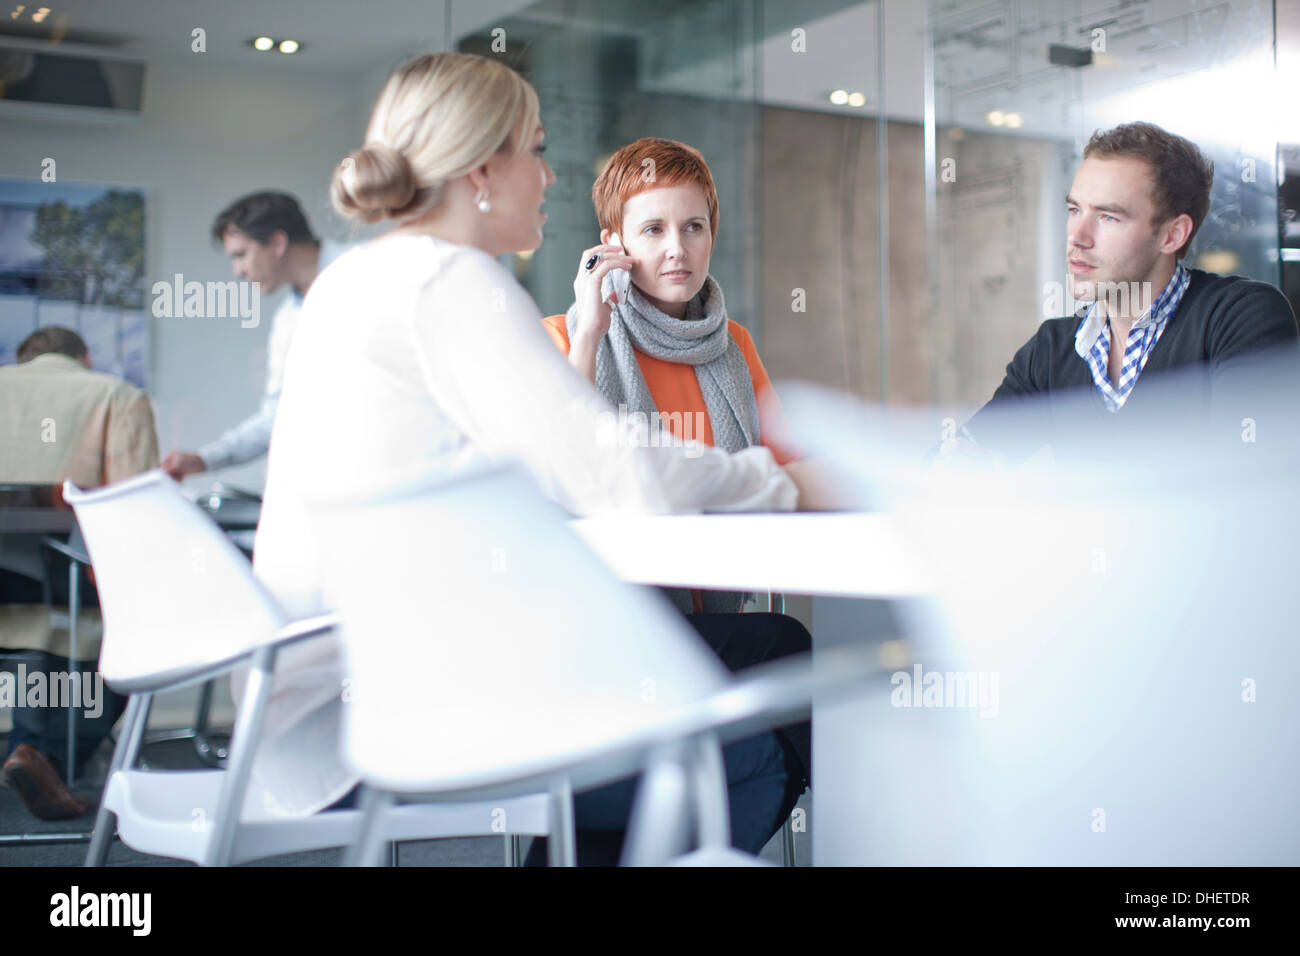 Businesspeople having meeting at conference table - Stock Image